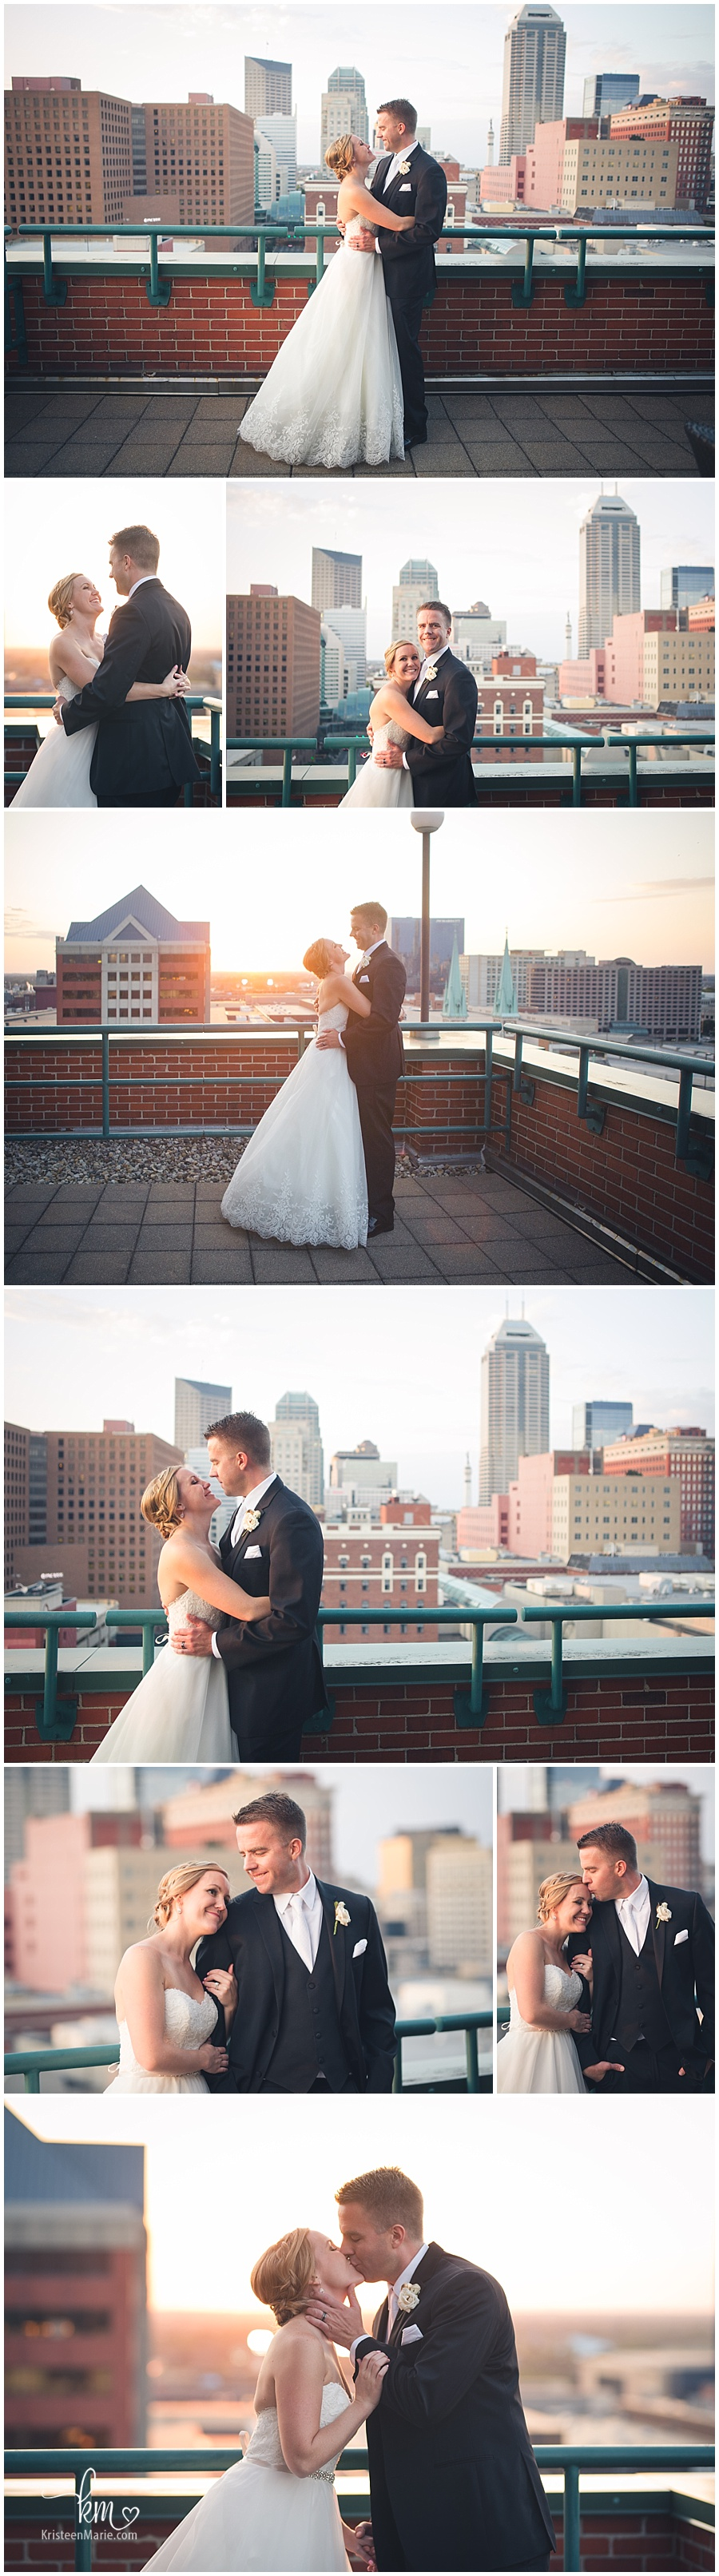 Sunset and Indianapolis skyline - stunning bride and groom!